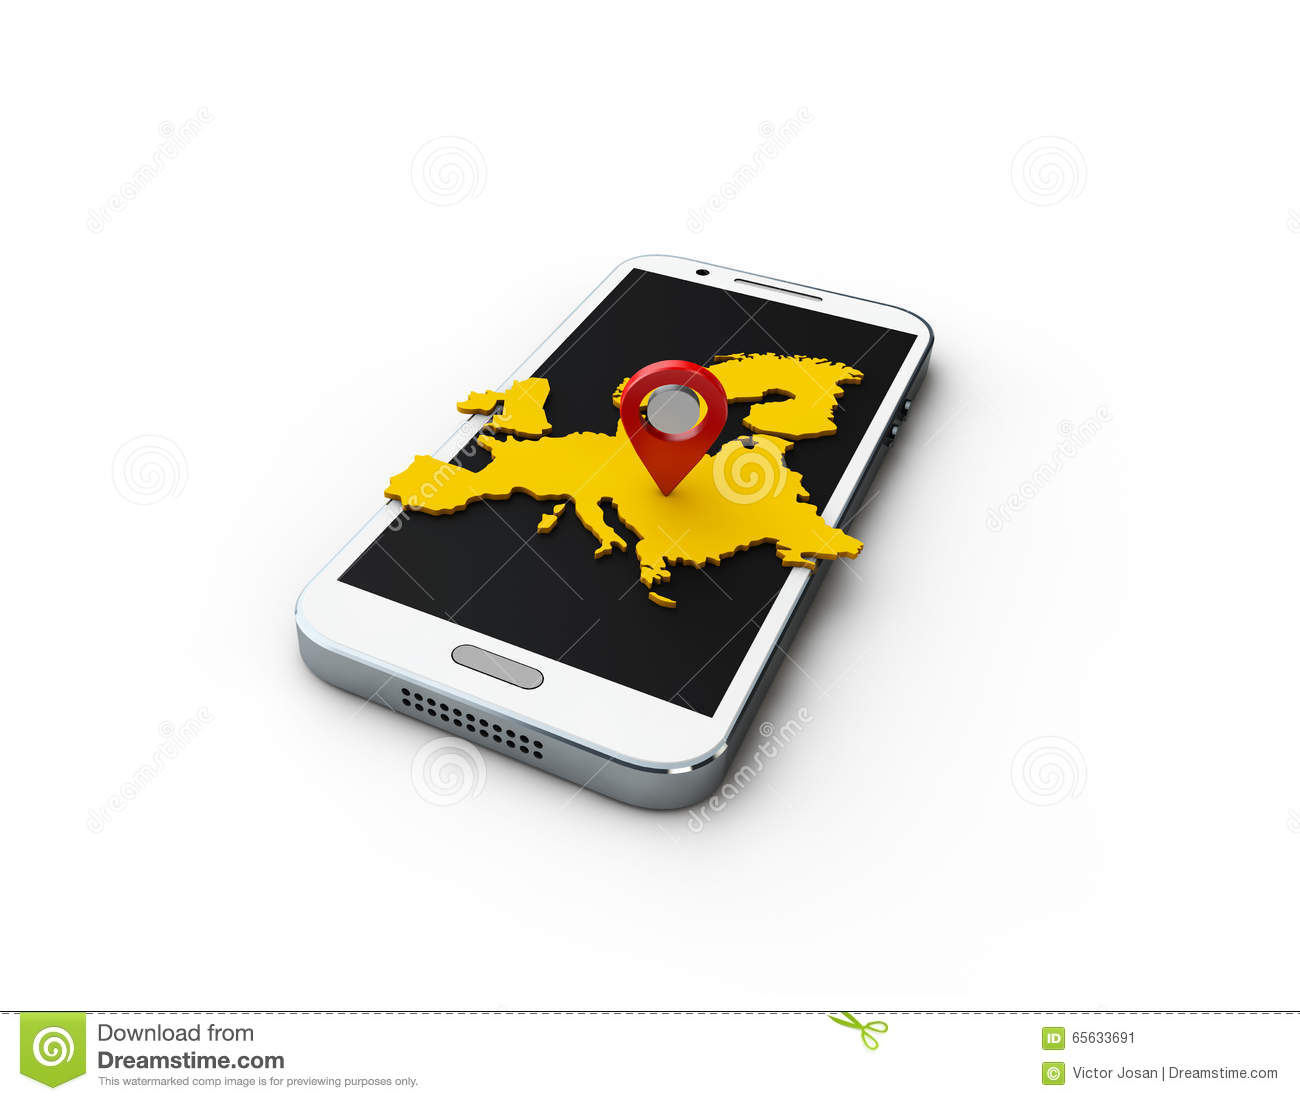 Carte d Europas de l application 3d sur le fond blanc